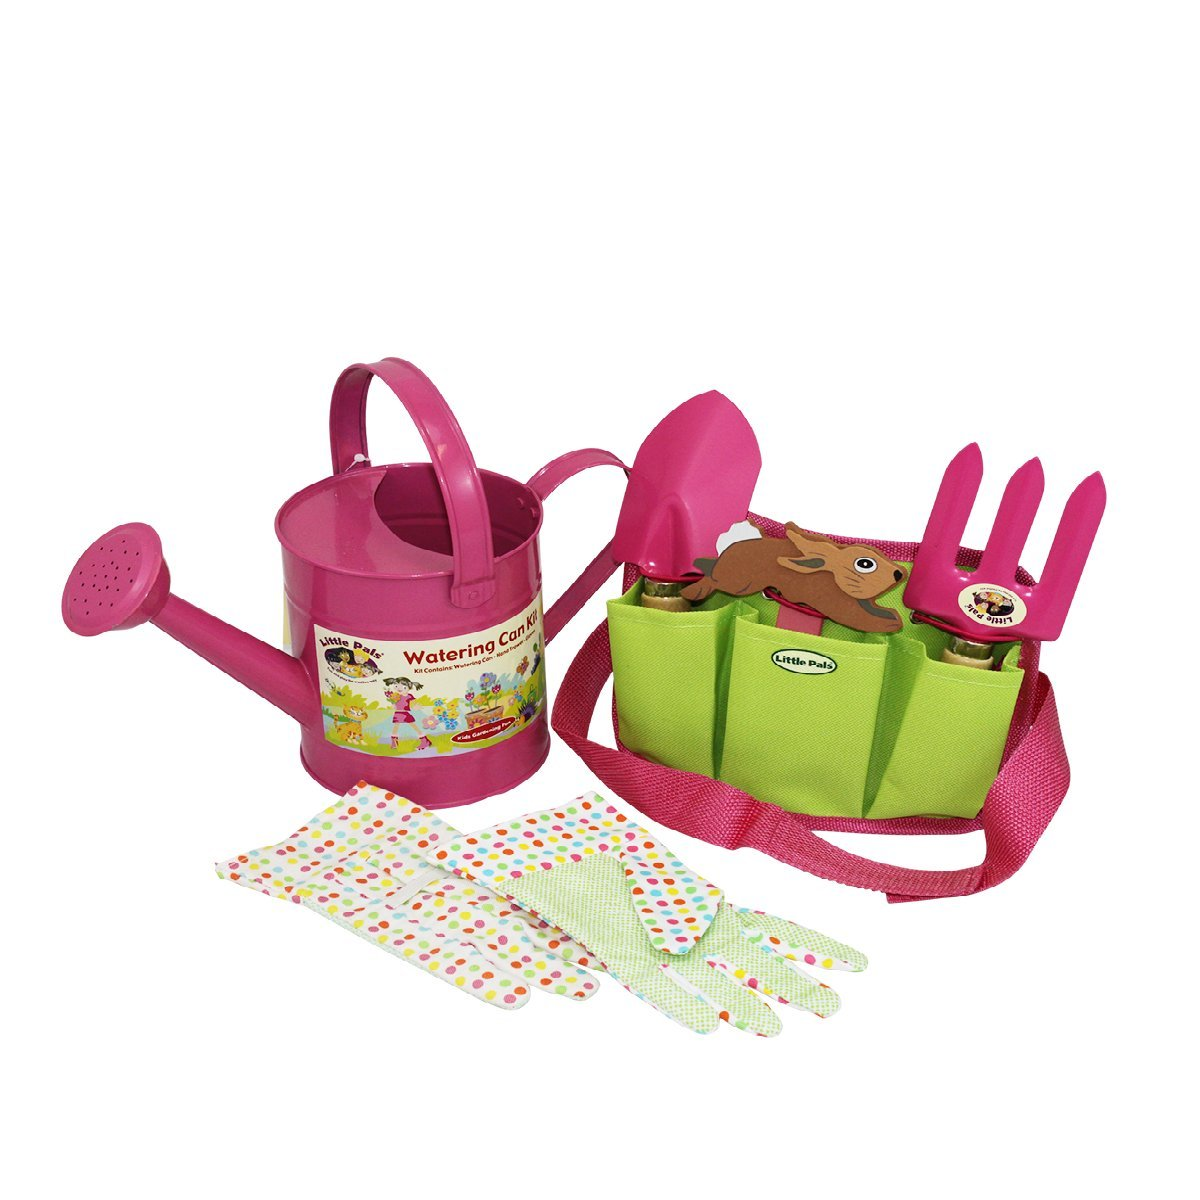 Little Pals Children's Watering Can Kit and Tool Pouch Set, Pink LP230